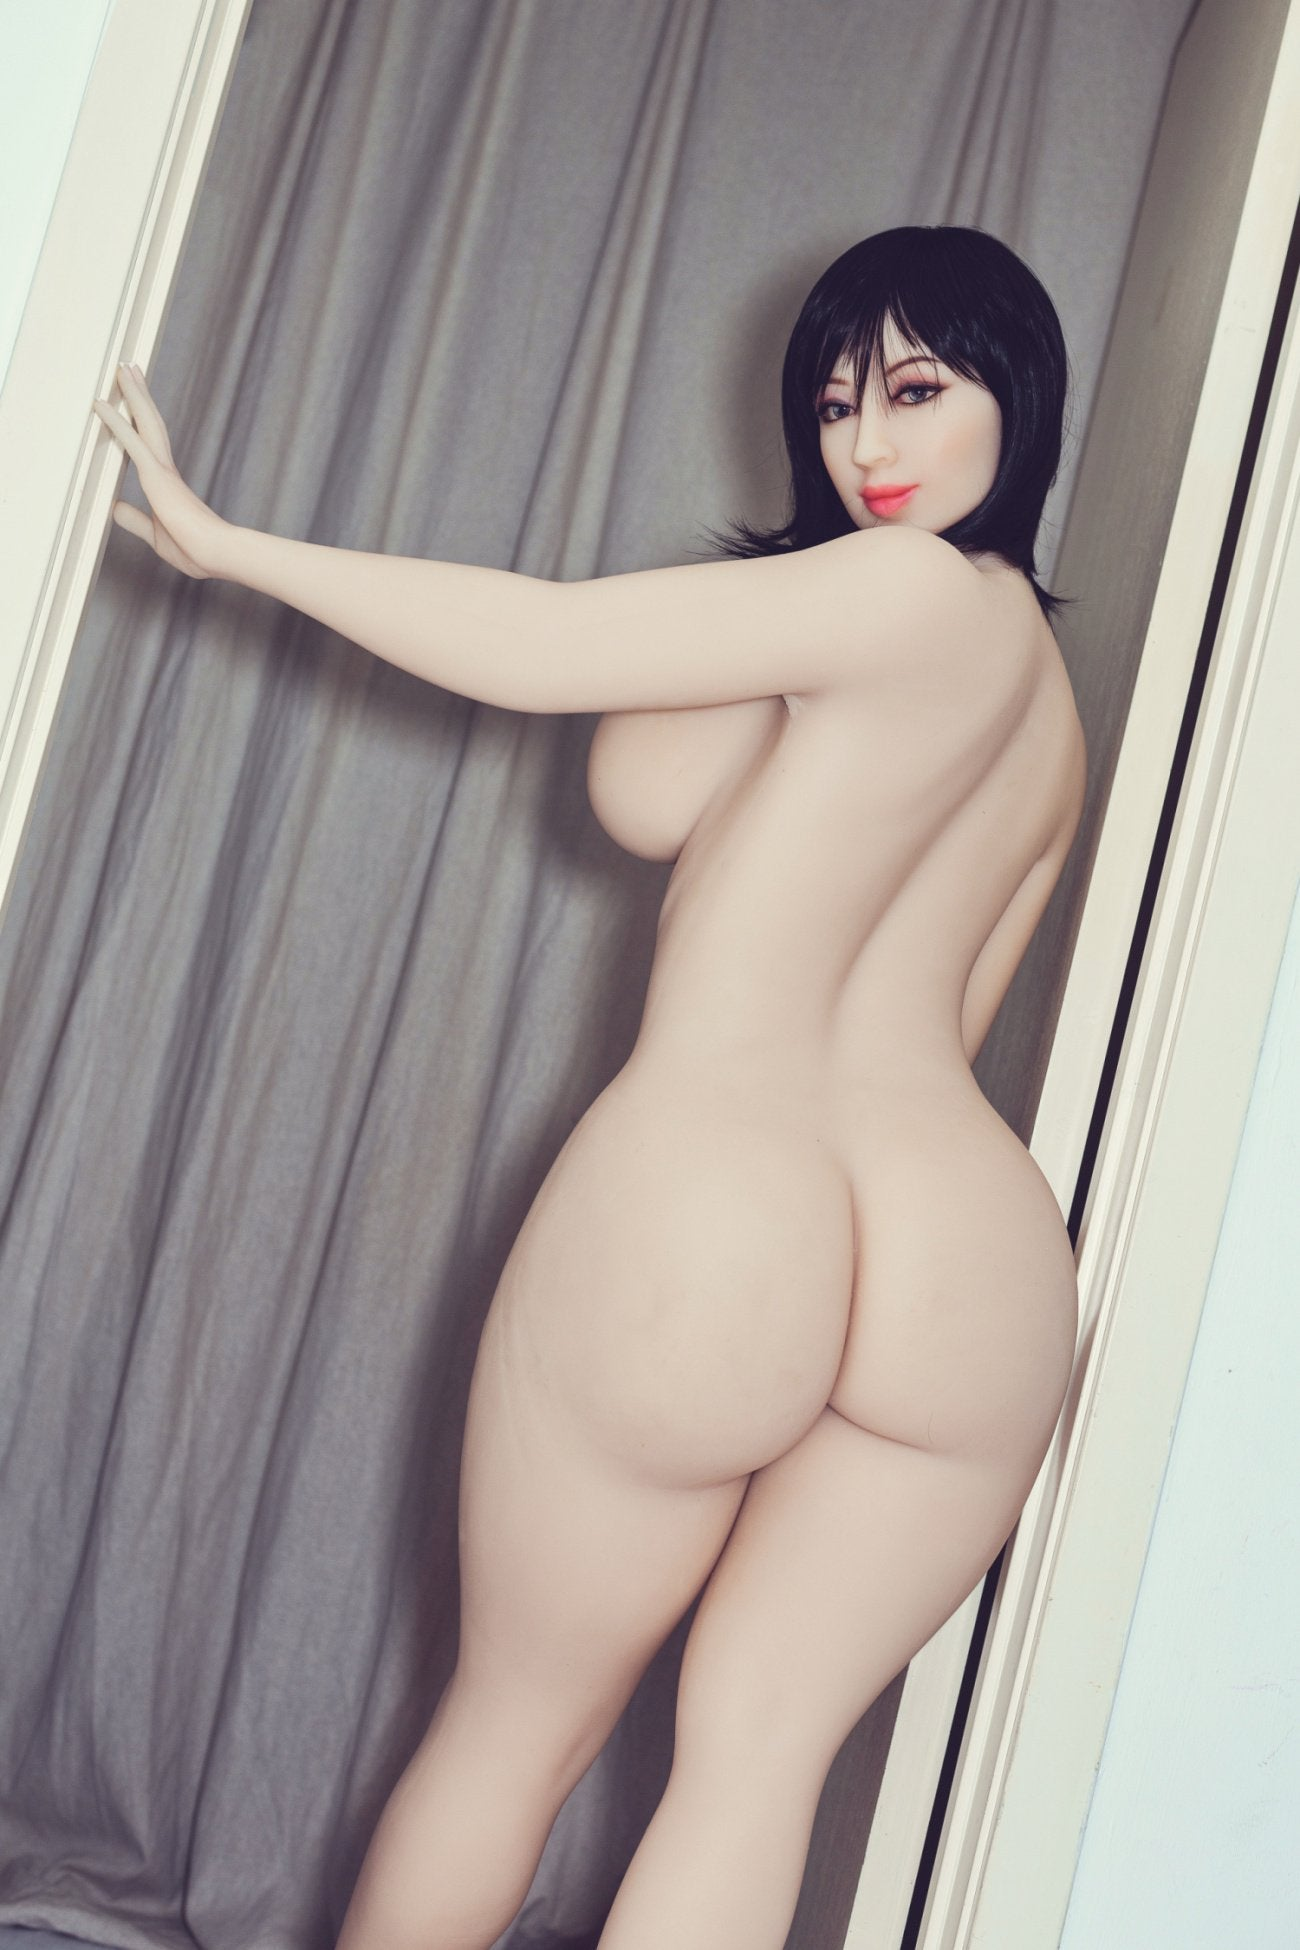 shar 163cm black hair curvy big boobs tpe wm bbw sex doll(8)